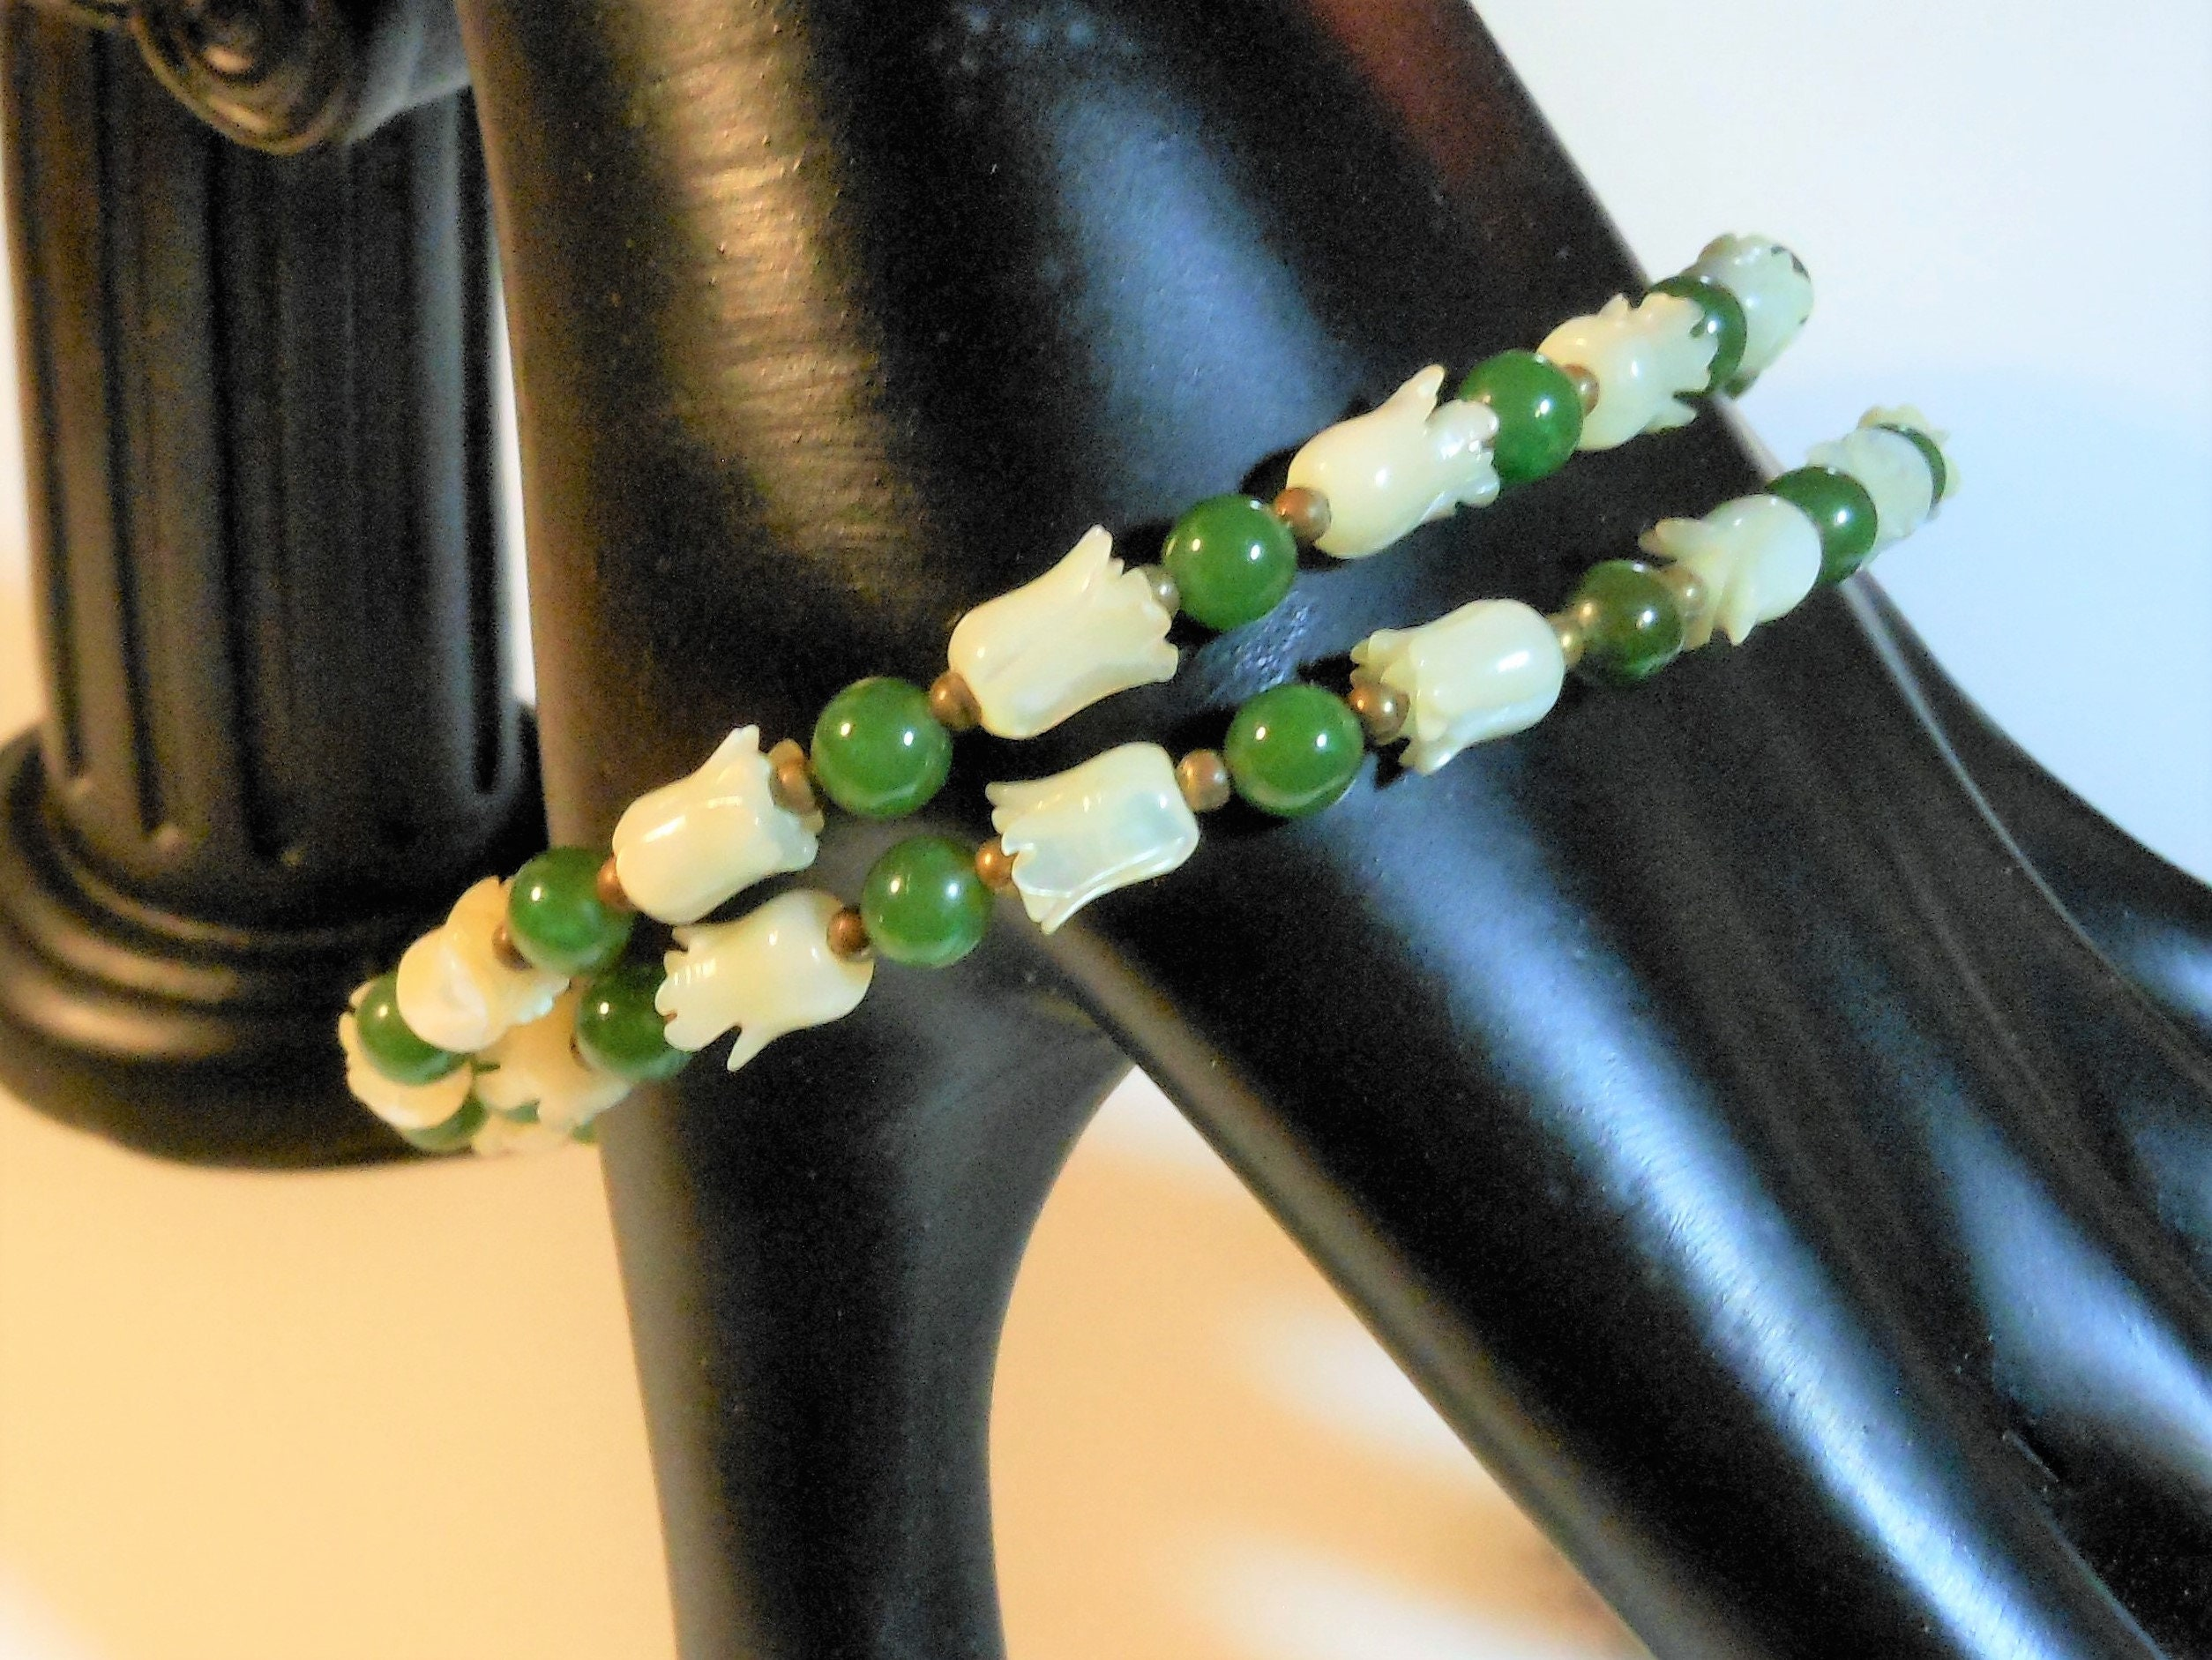 Necklace choker green beads MOP beads green pearls w Mop pendant  one size fits most #1485